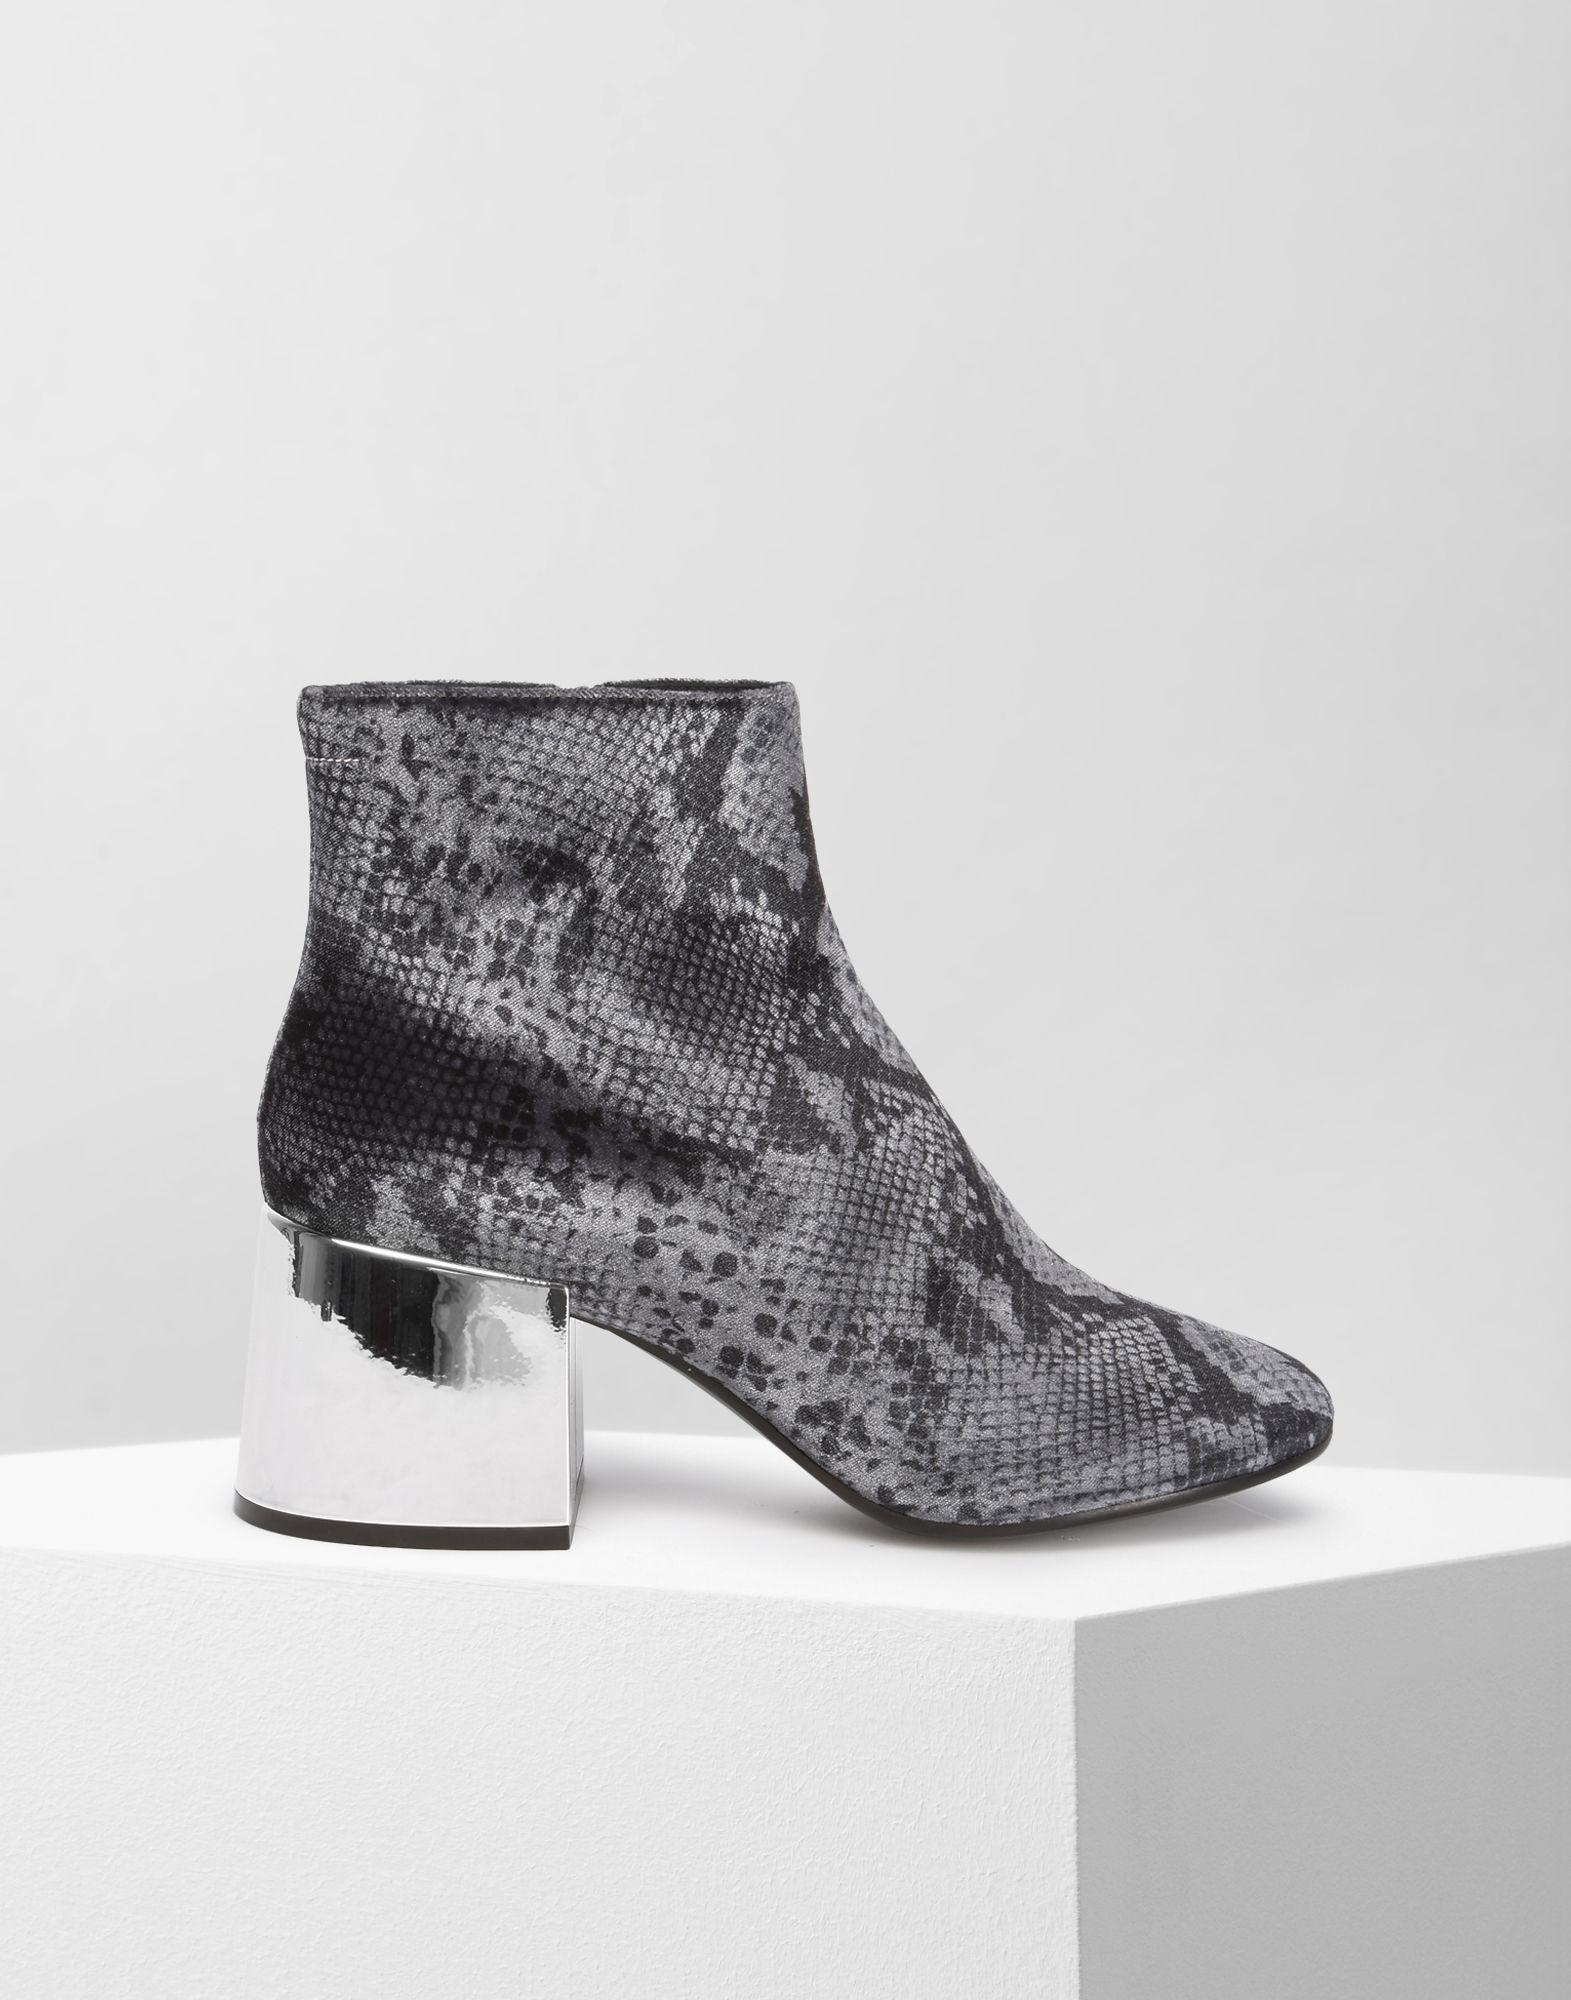 MM6 Maison Martin Margiela Black Rylee Low Boots free shipping lowest price outlet sale online best sale cheap price outlet looking for outlet hot sale FtcOC4